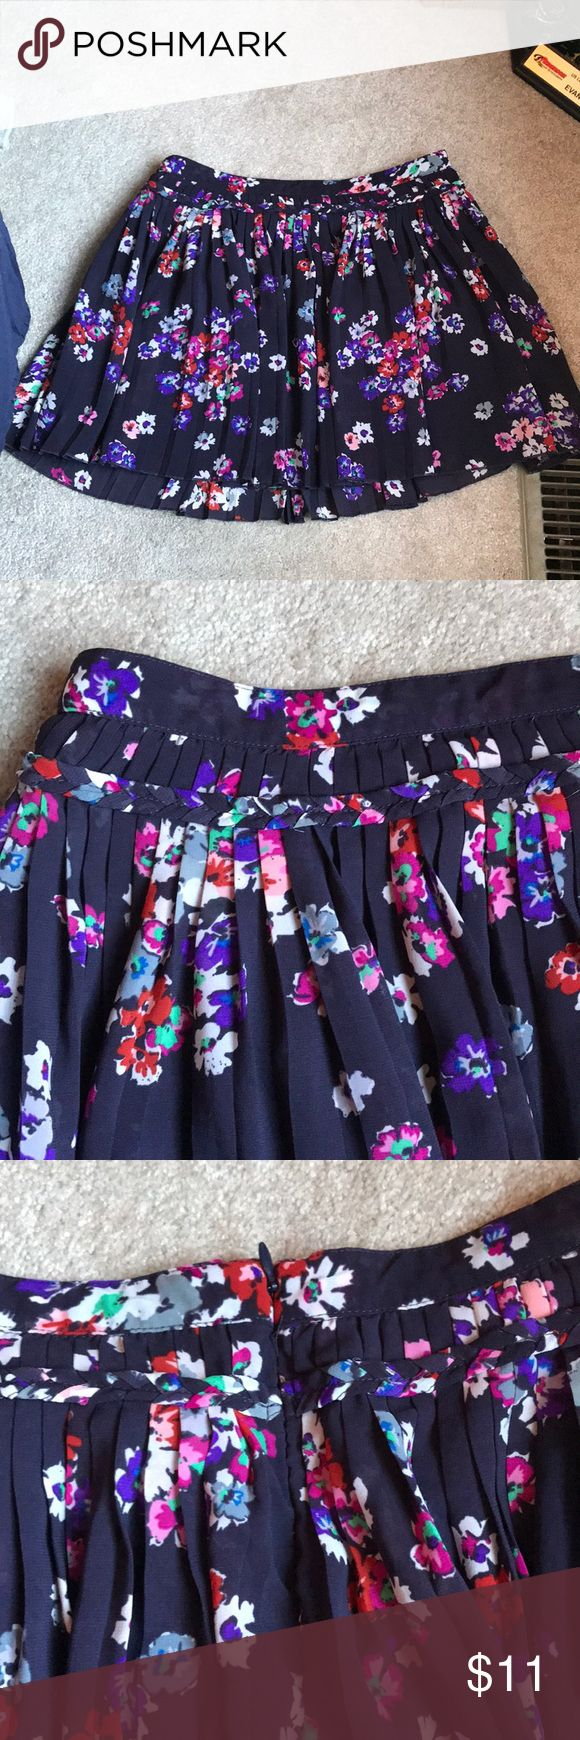 [American Eagle] Flowered Skirt Lightly worn, in good condition!!! Purple flower skirt, with braided around the top. Has an extra layer underneath. Cute for spring!!! American Eagle Outfitters Skirts Midi